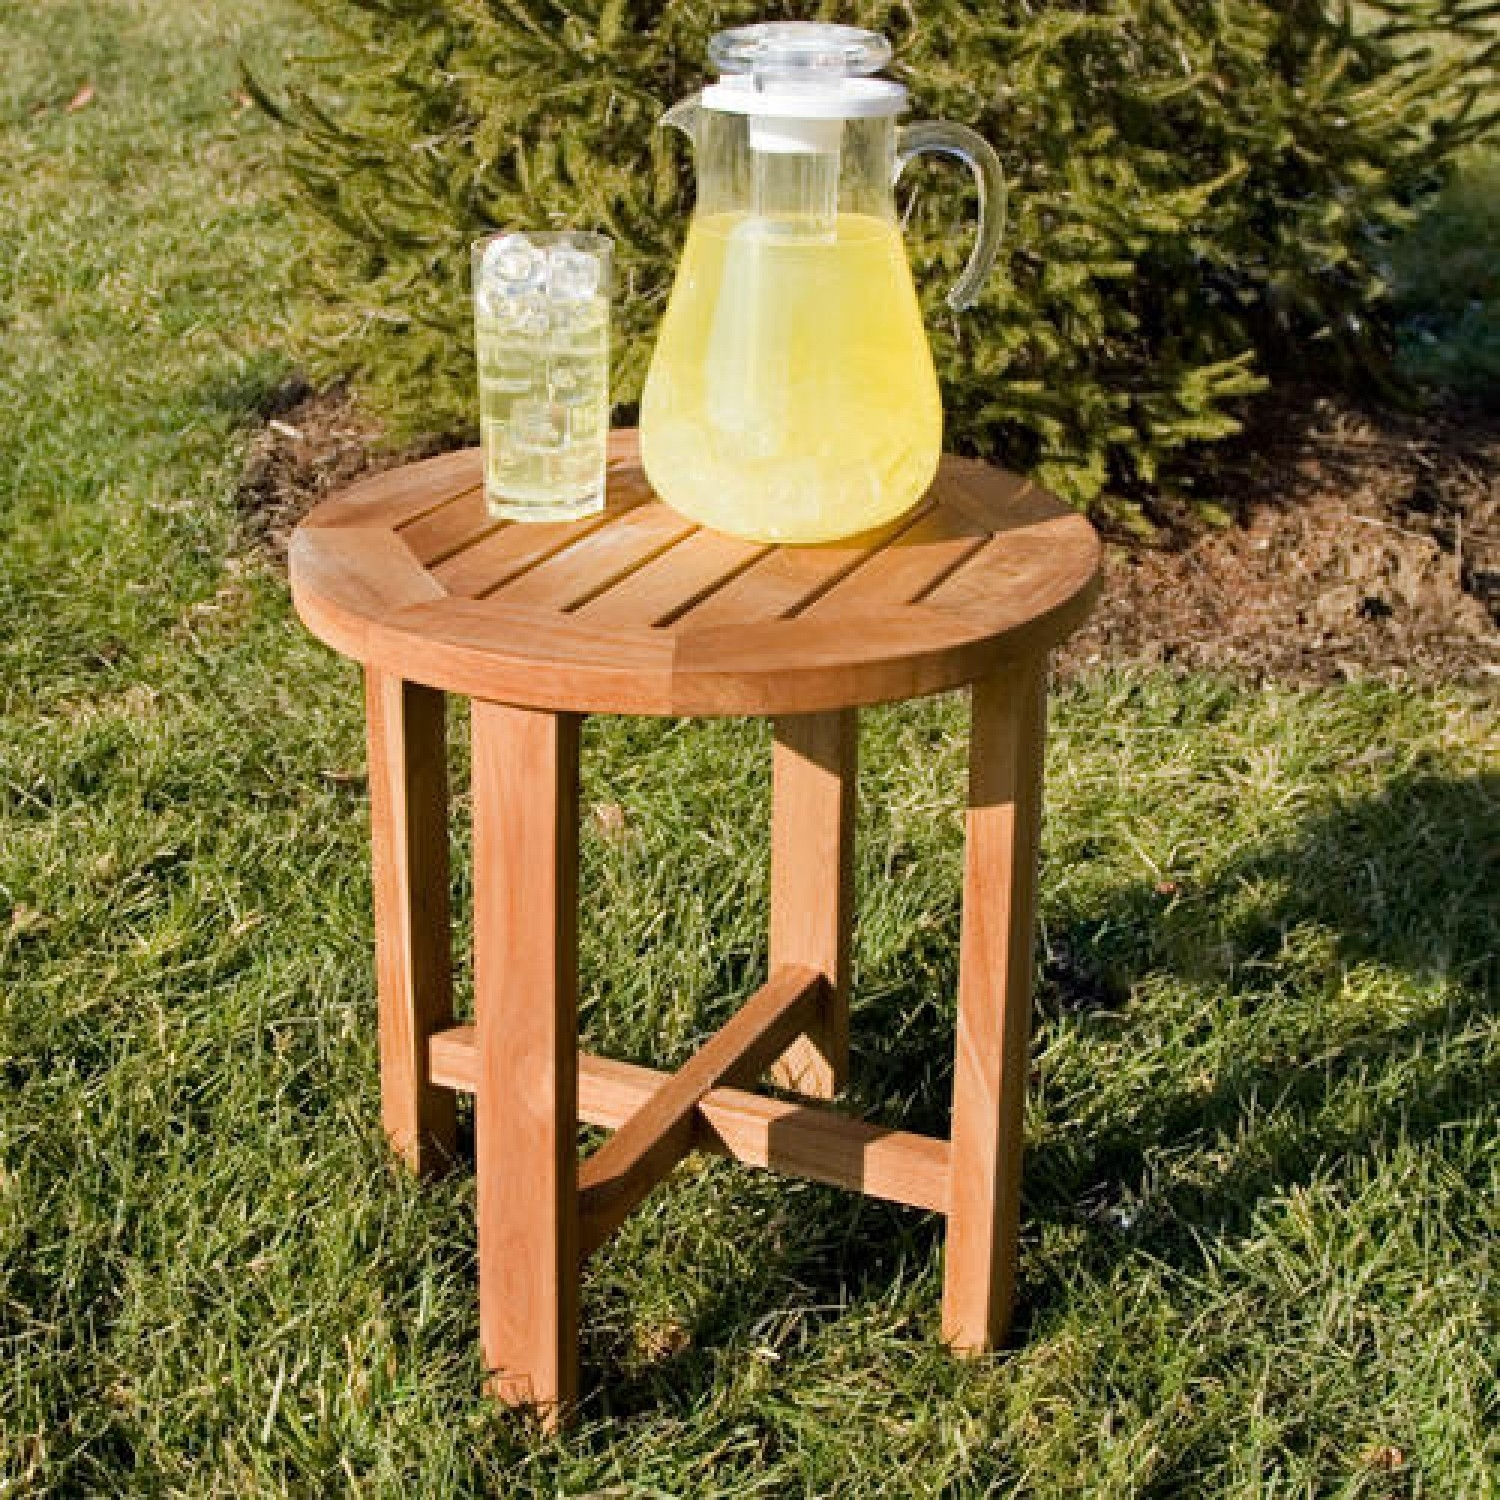 Tall Teak Coffee Table Outdoor — New Home Design : The Elegance Of pertaining to Round Teak Coffee Tables (Image 24 of 30)